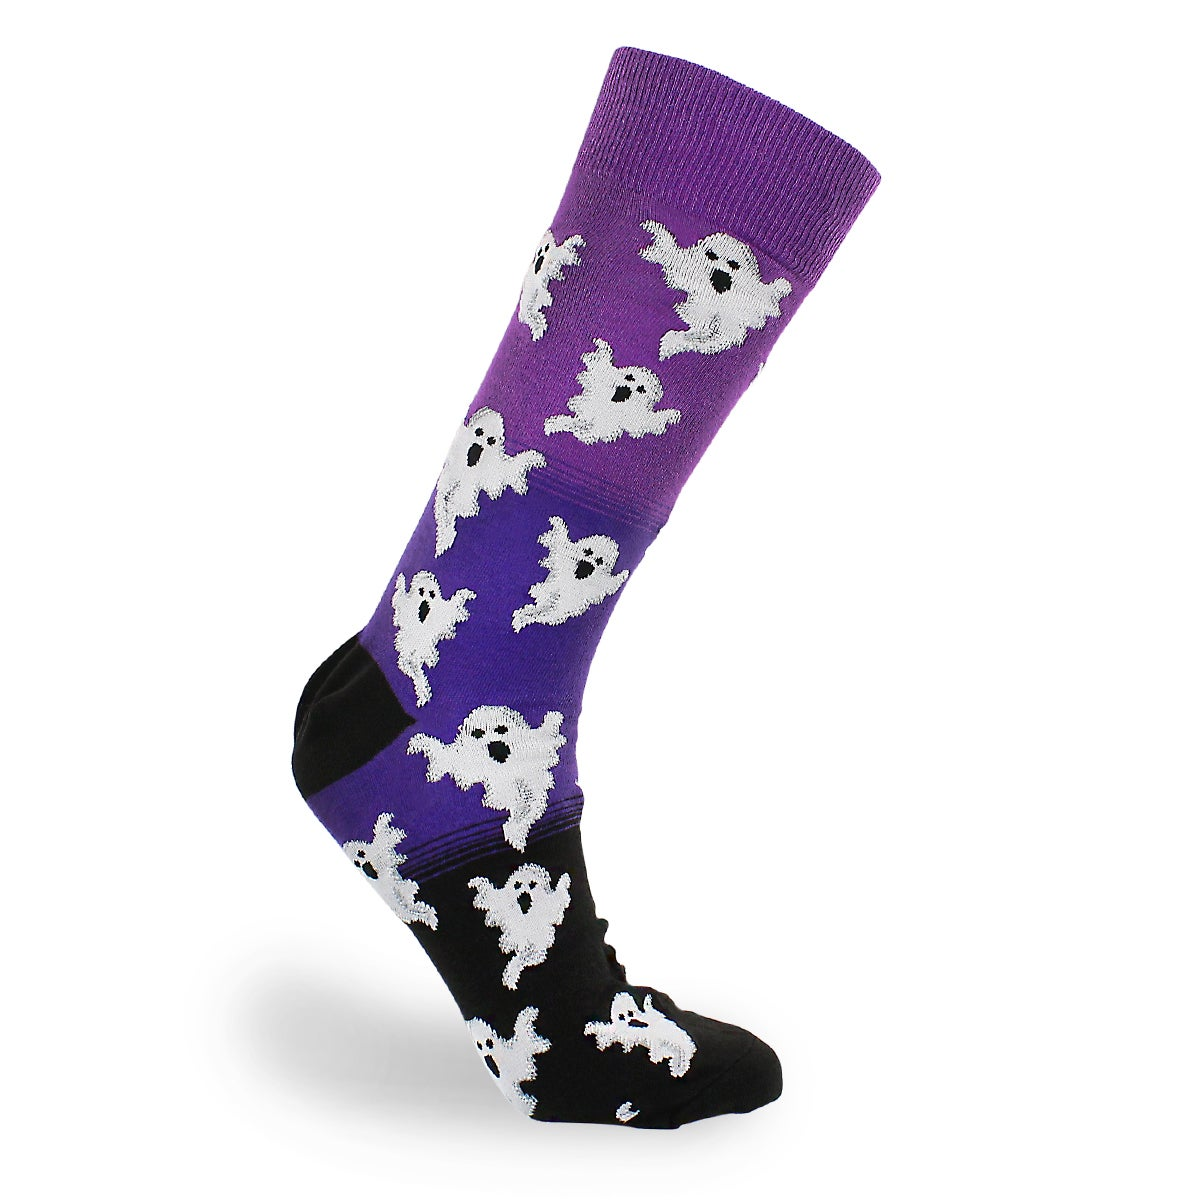 Mns Ghost purple printed sock